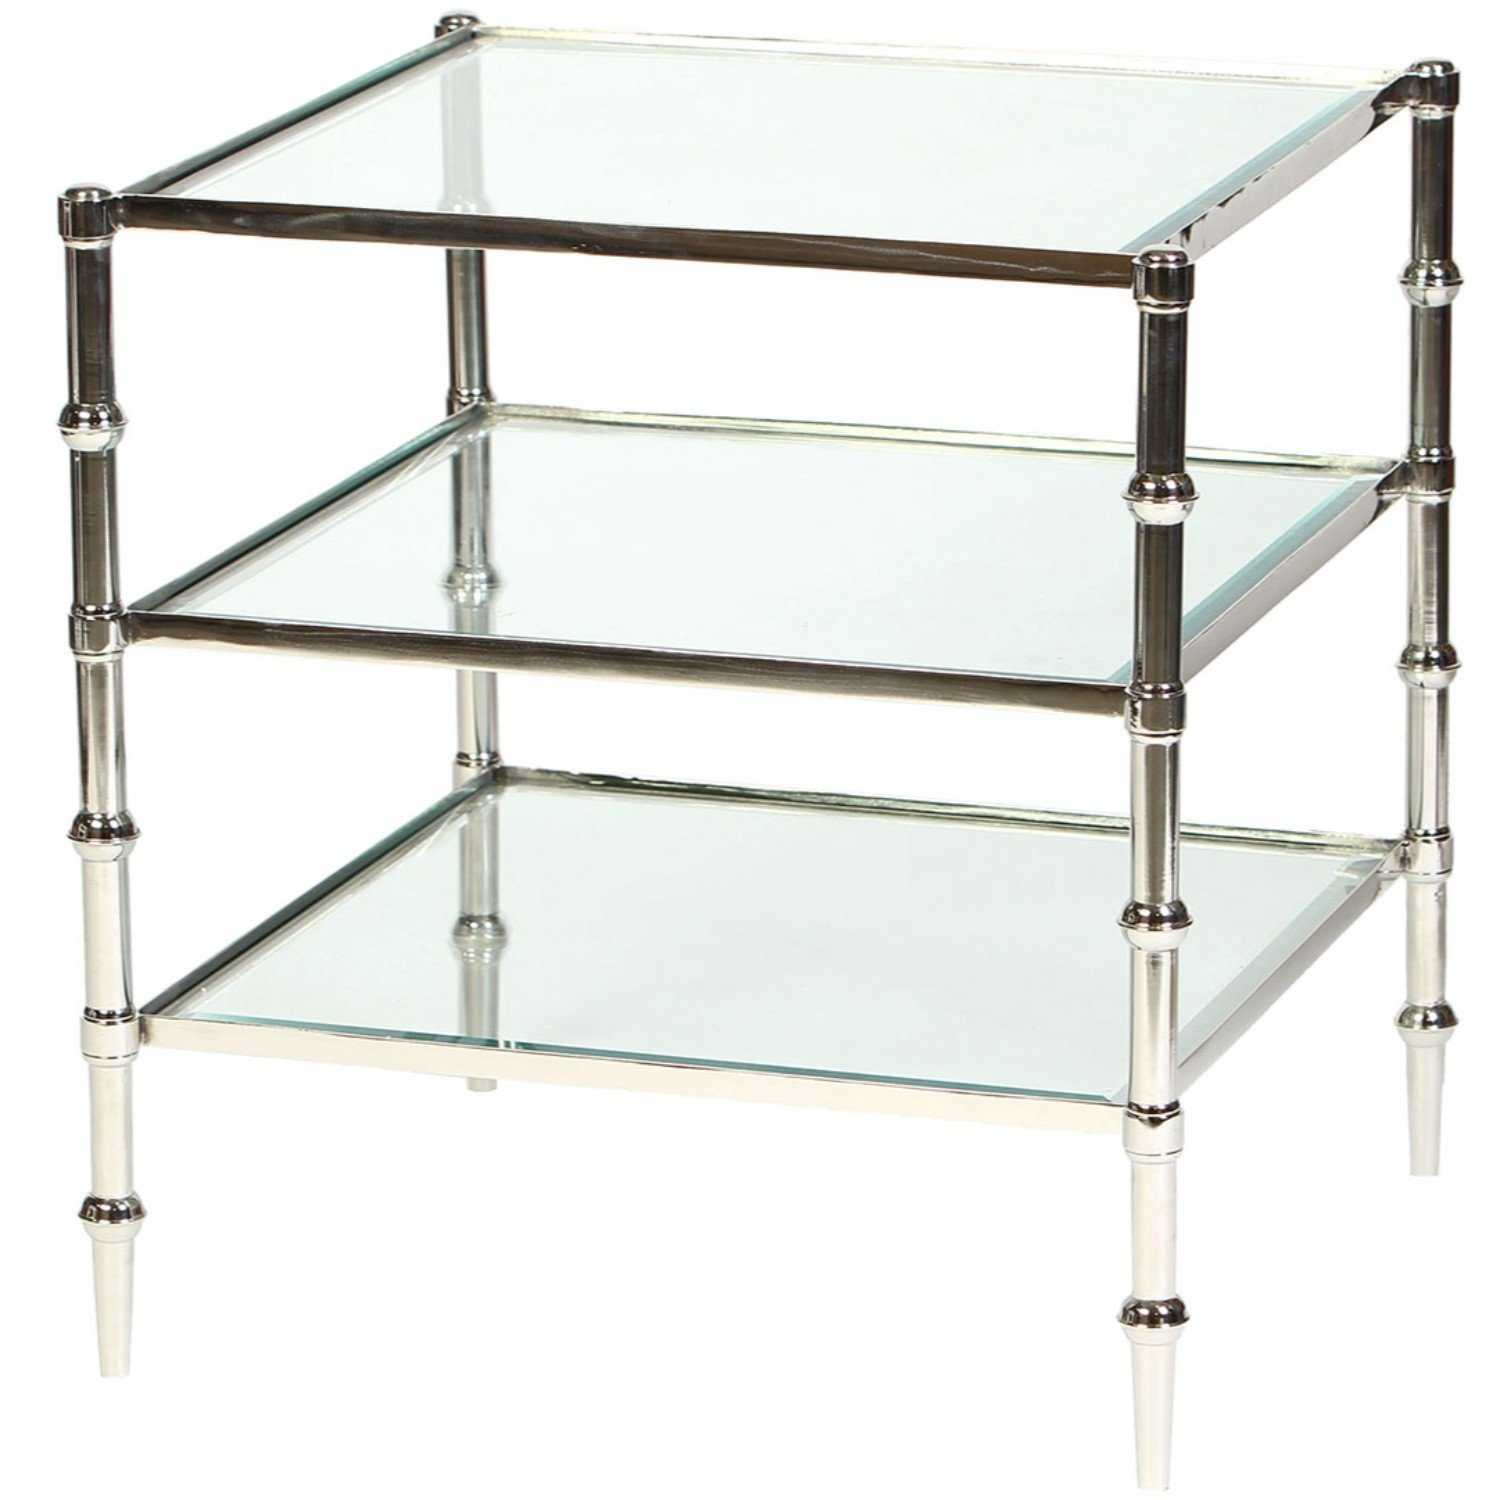 Knox and Harrison Tiered Square Glass Occasional Accent Table in Polished Nickel Finish